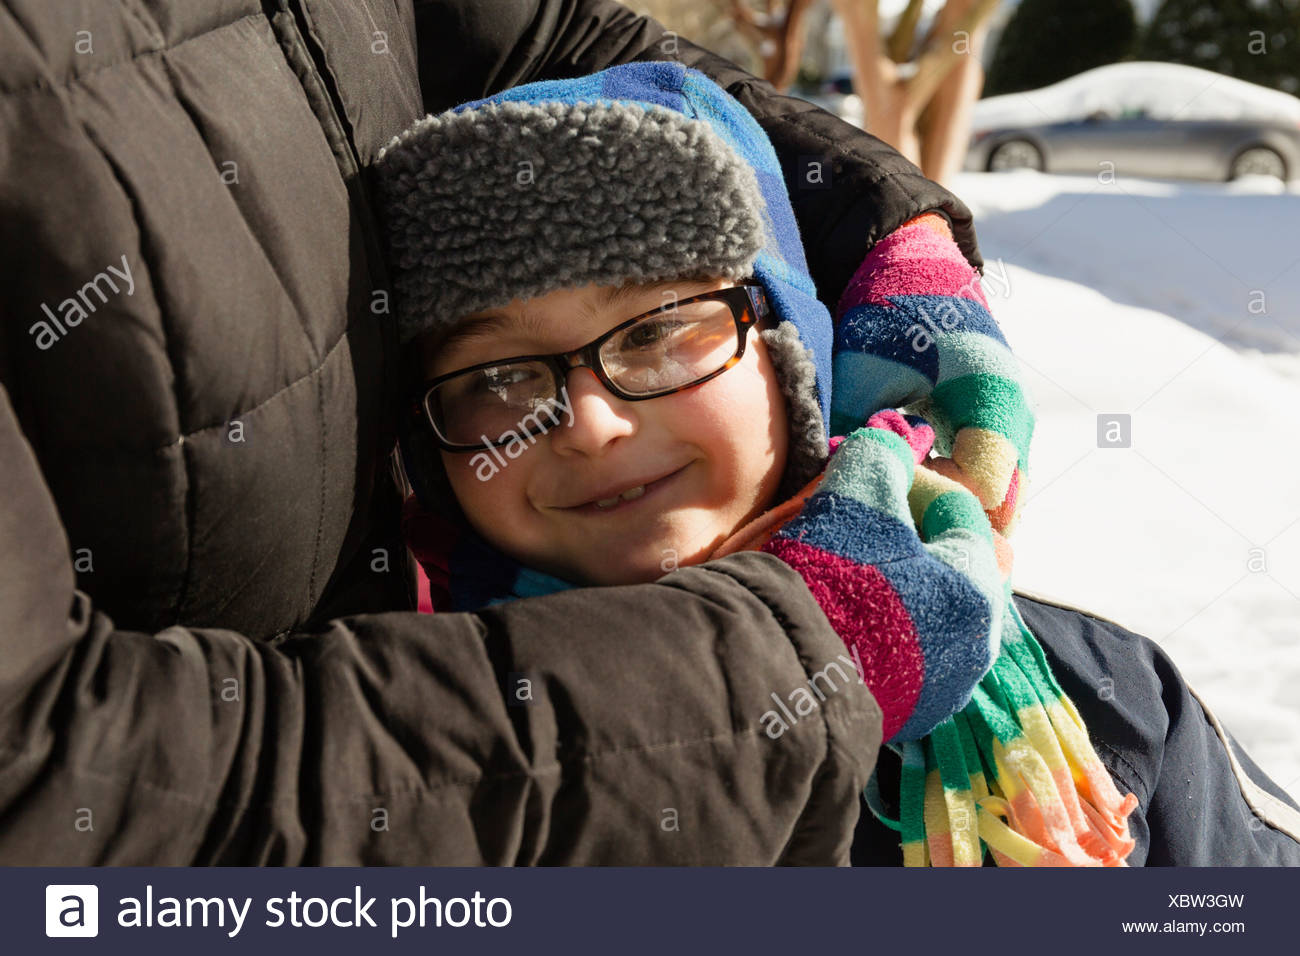 Mother hugging son wearing winter hat and glasses Photo Stock